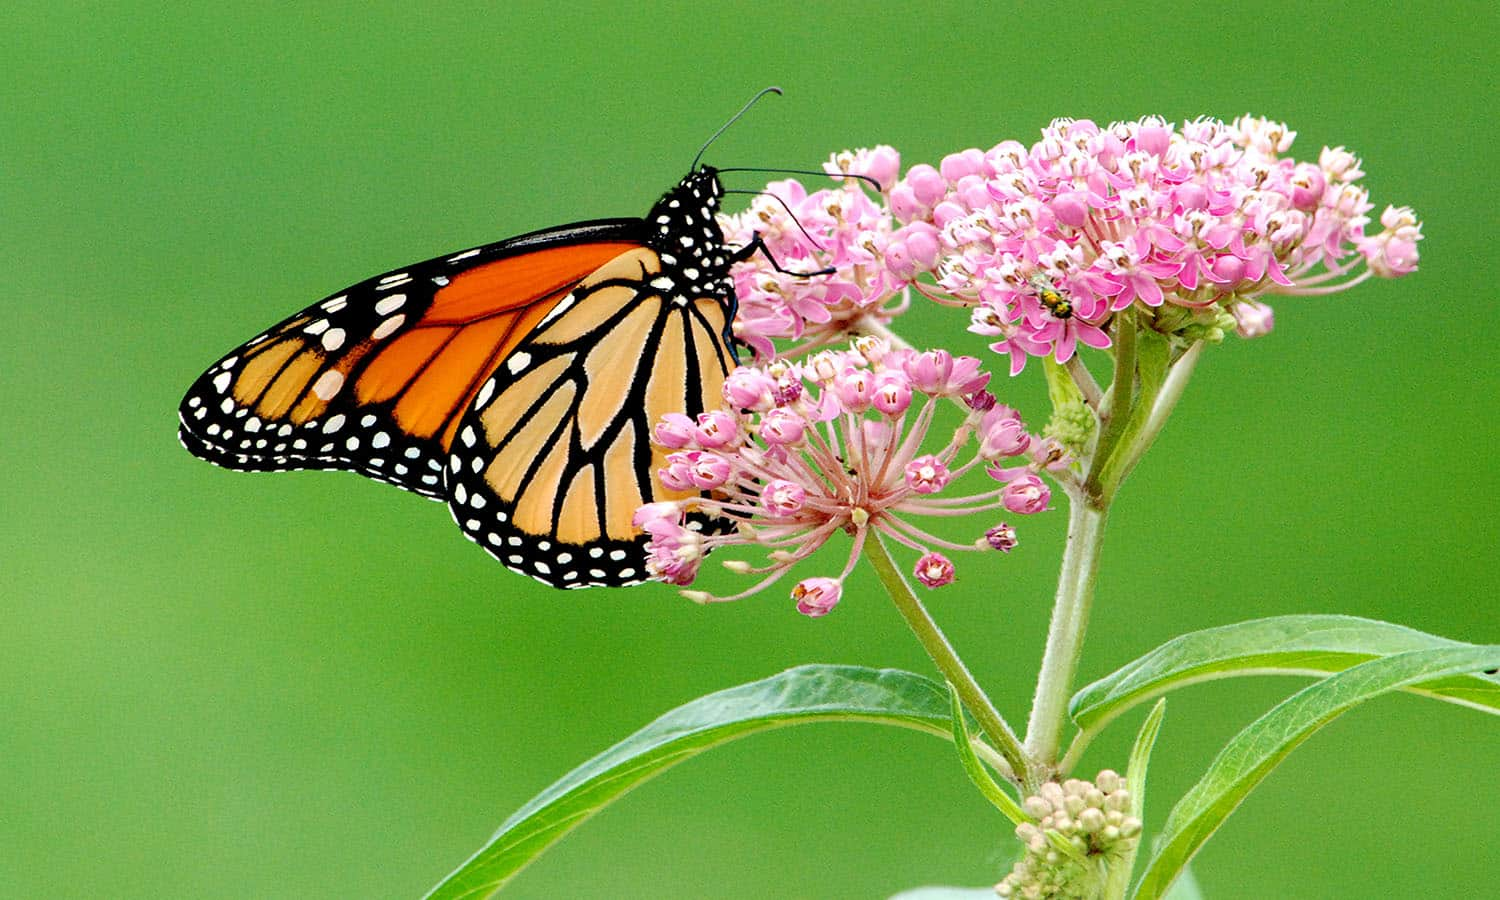 Even though National Pollinator Week ended in June, supporting monarch butterflies is still important in the late summer and fall.